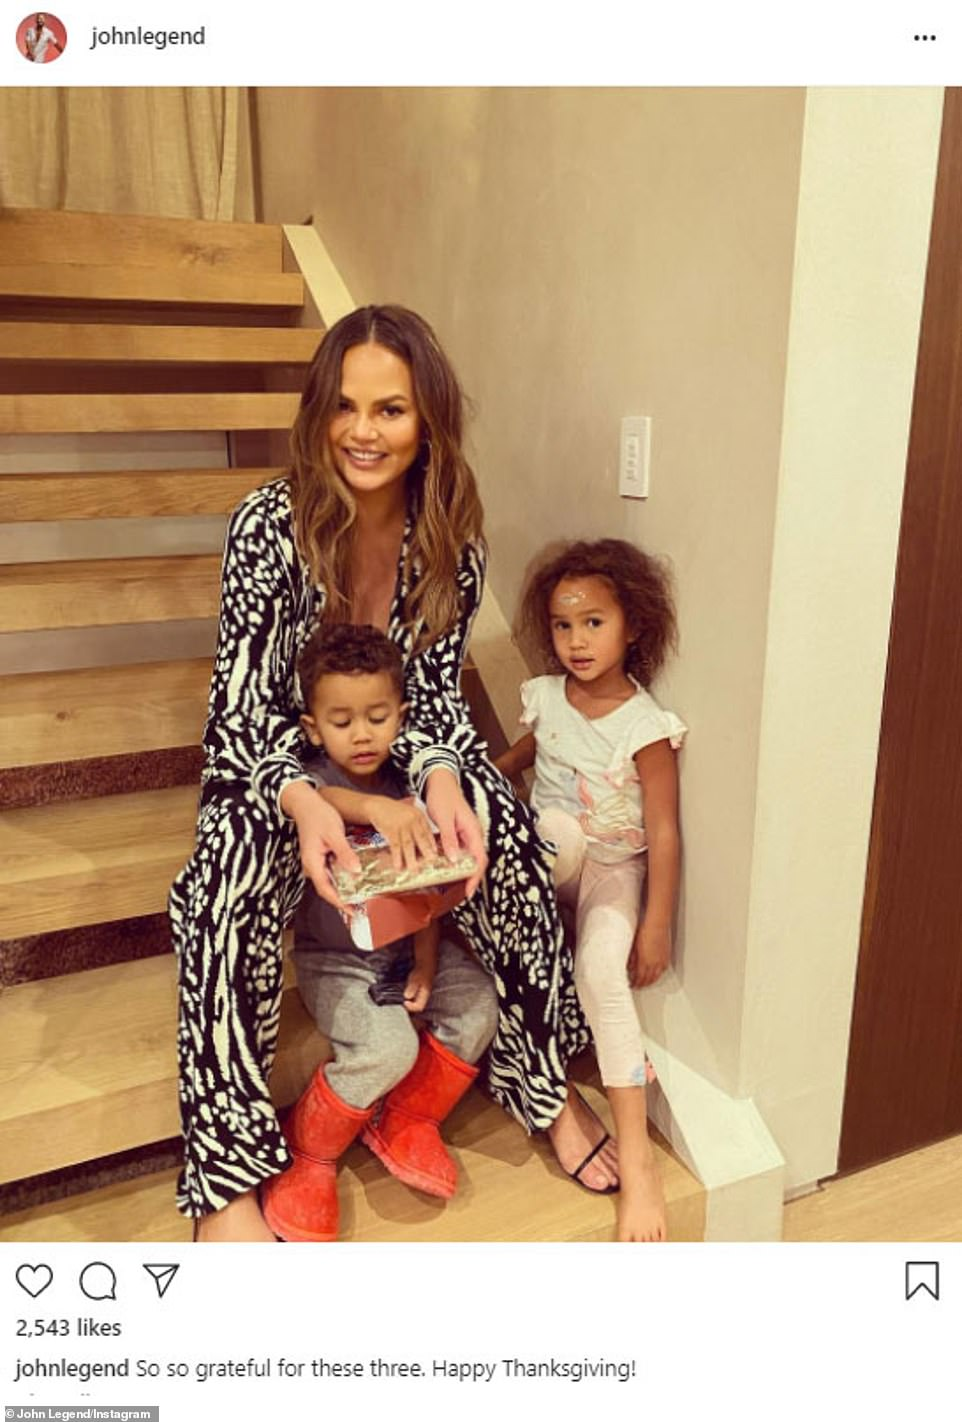 She is happy for what she has: Chrissy Teigen said she was 'so grateful' for her two kids